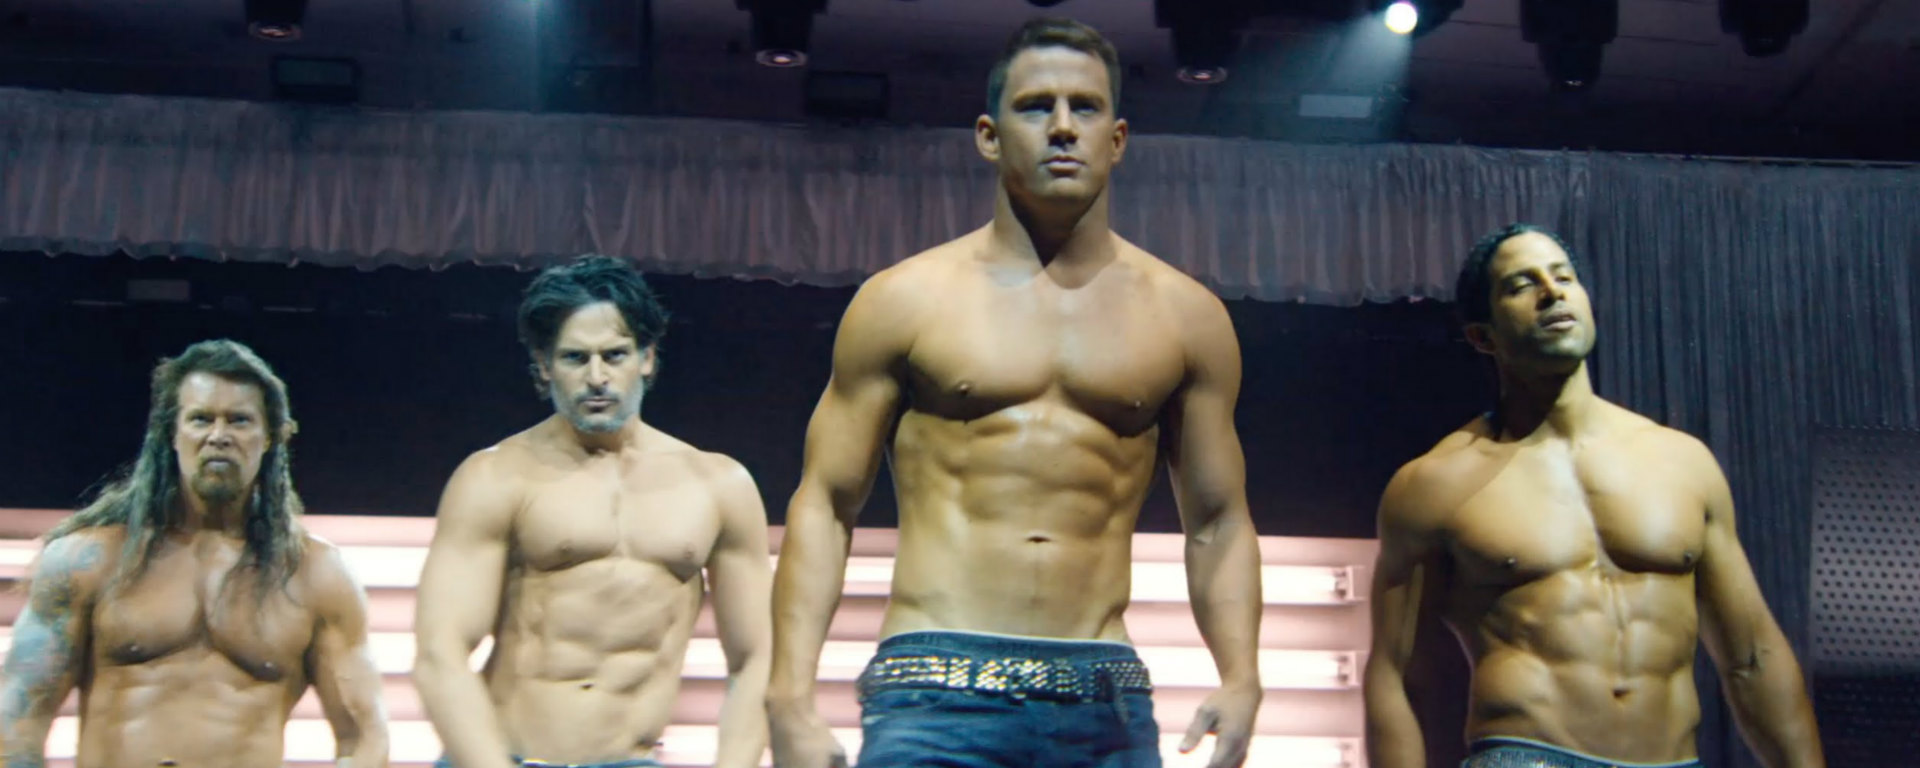 Channing Tatum in 'Magic Mike XXL'